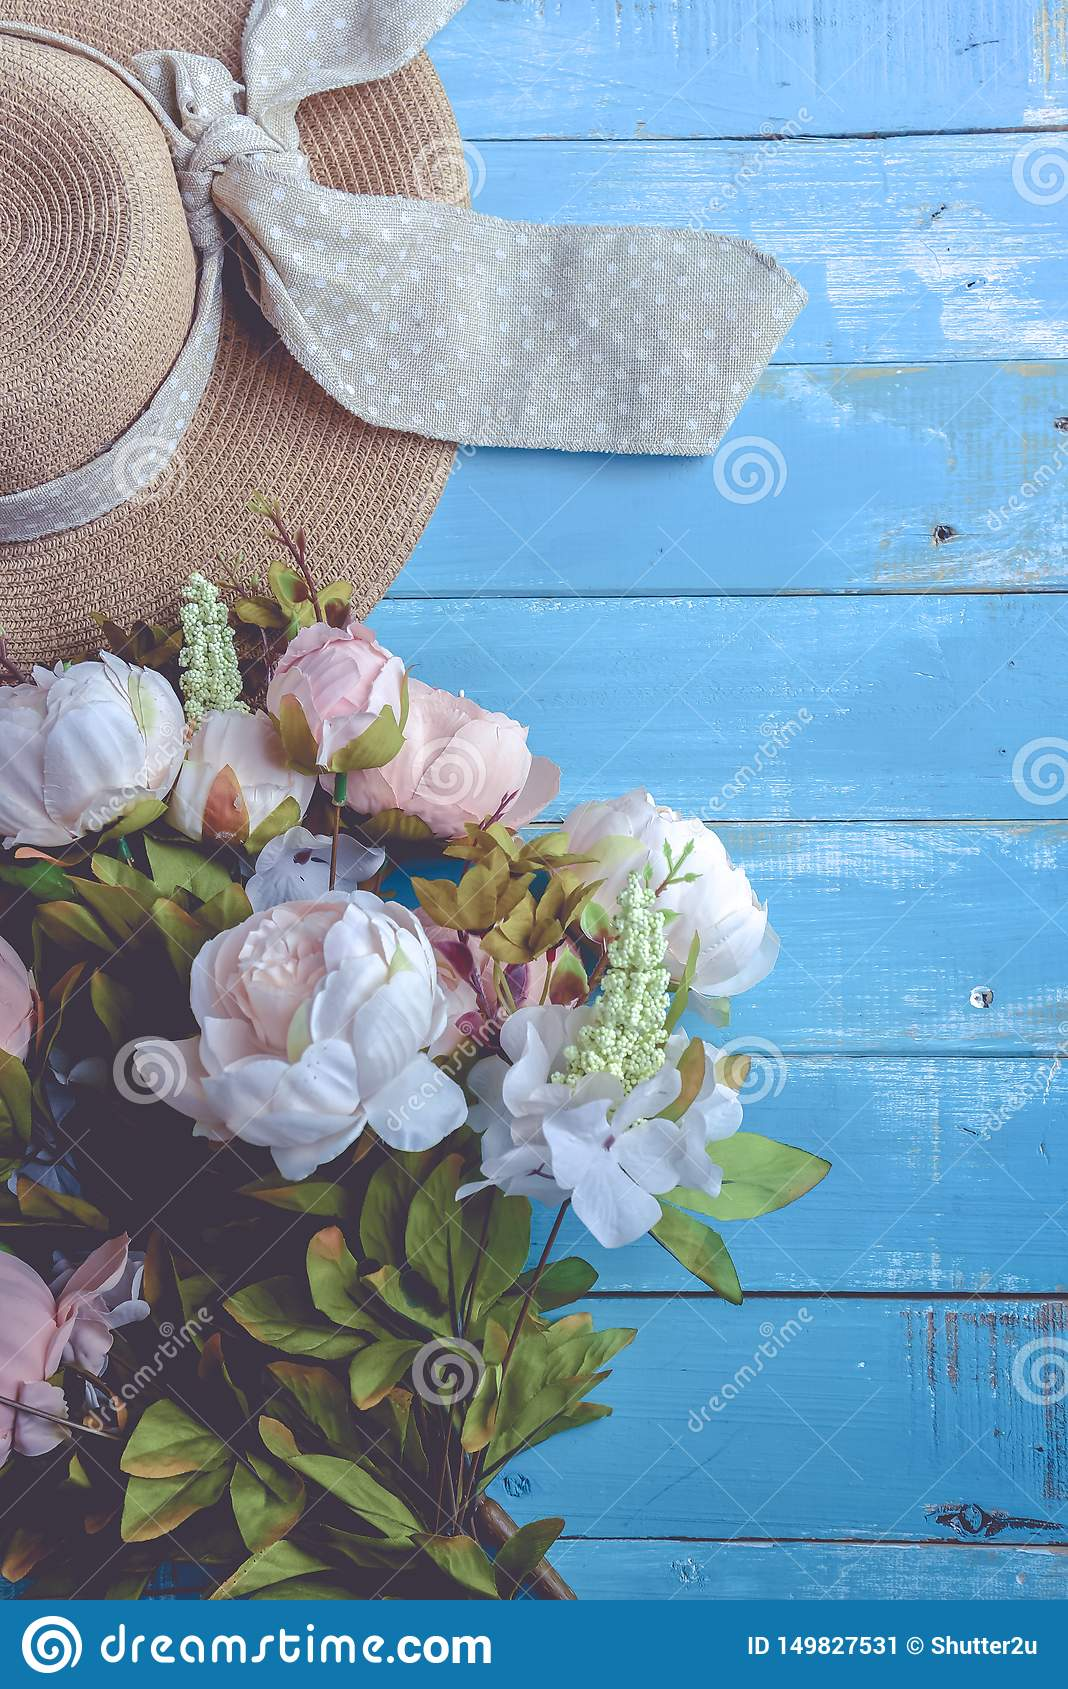 Sun hat and flowers on blue wooden plank background. Holiday and relax concept. Pastel tone